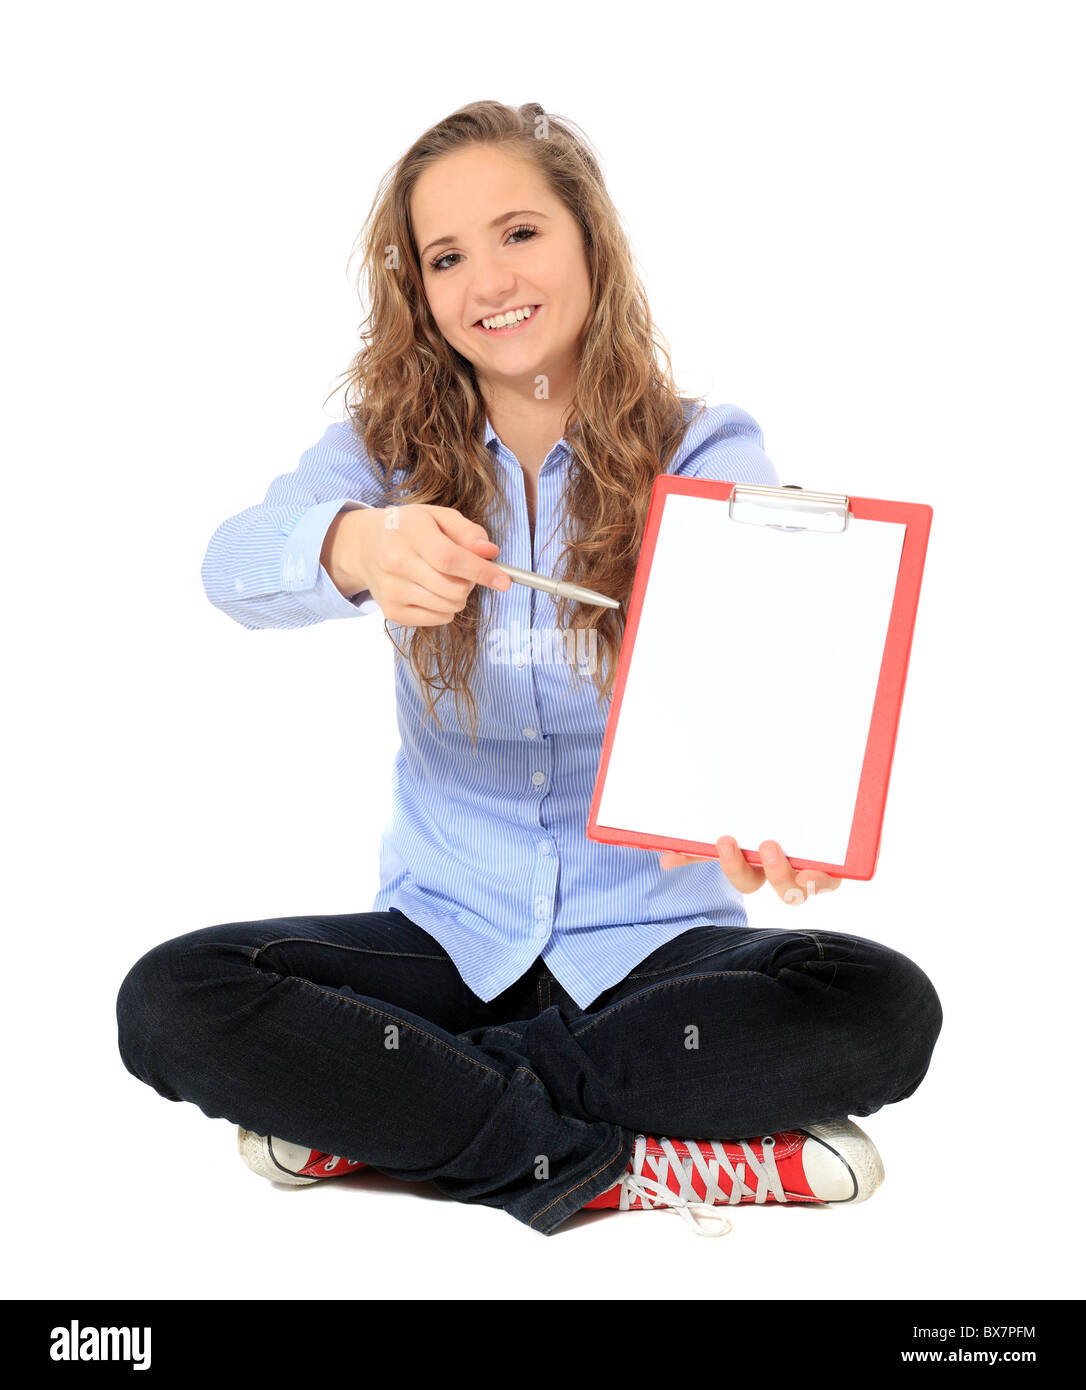 Attractive young girl pointing with pen on clipboard. All on white background. - Stock Image